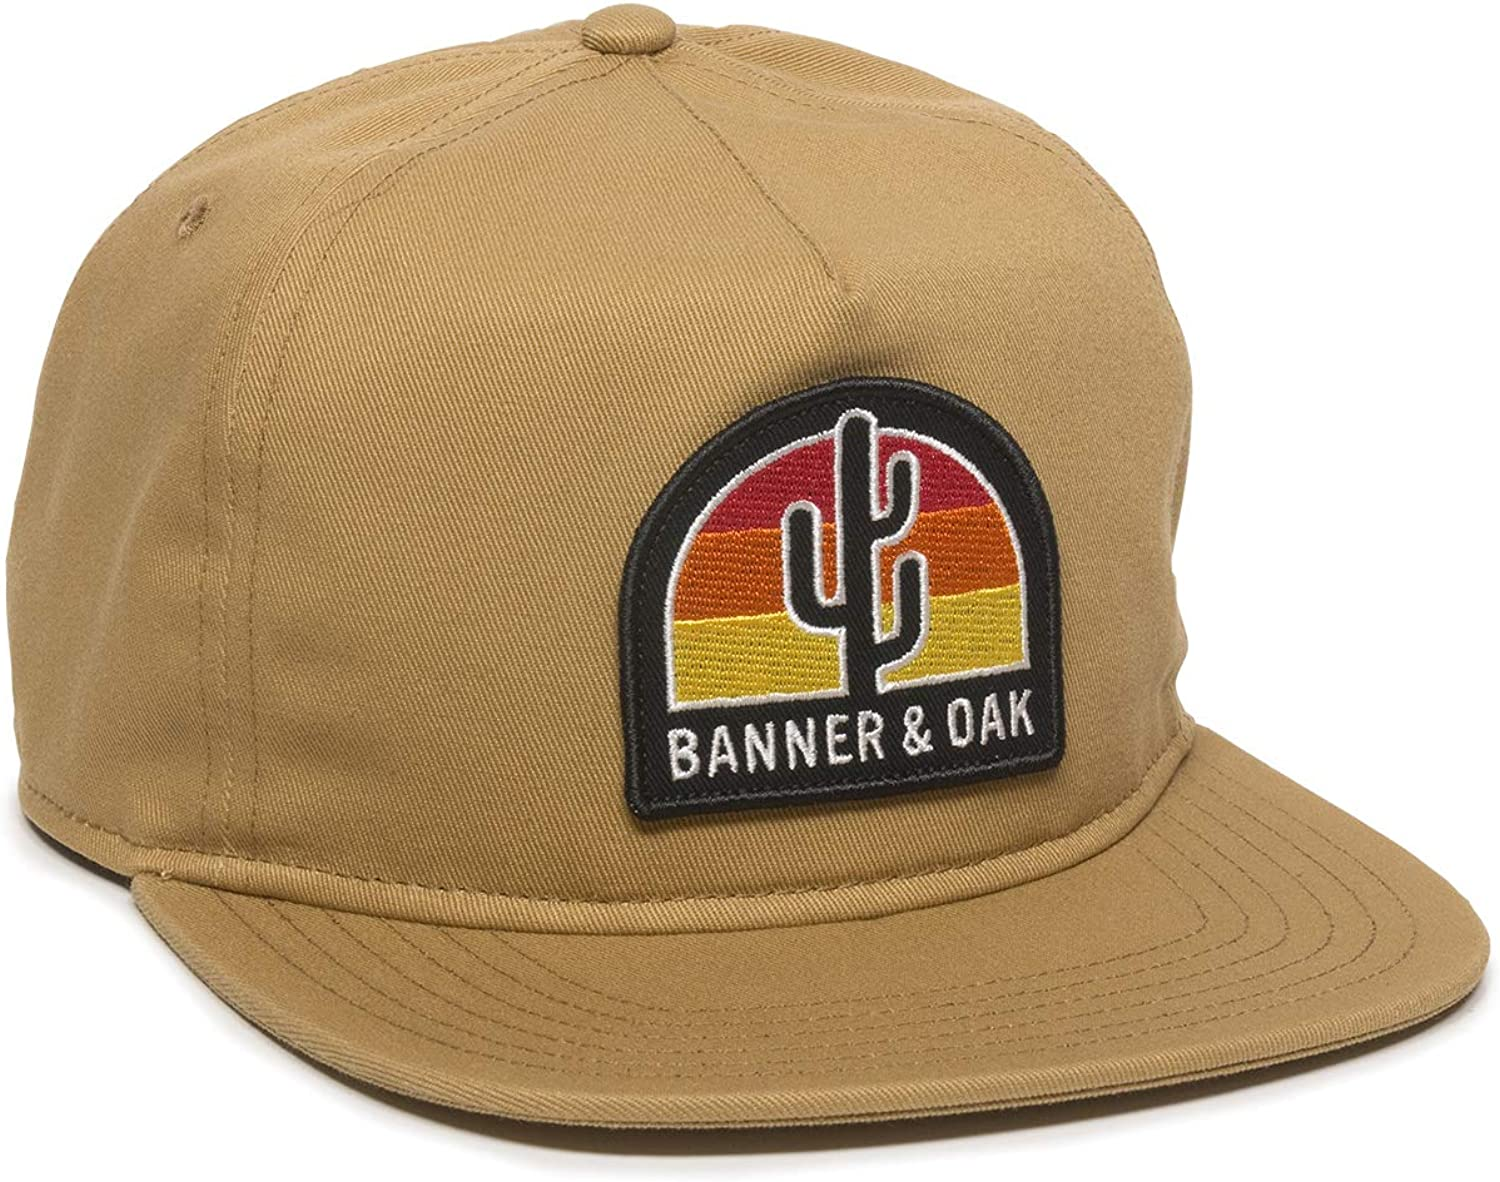 Switchback Embroidered Scout Patch Hat - Adjustable Baseball Cap w/Plastic Snapback Closure